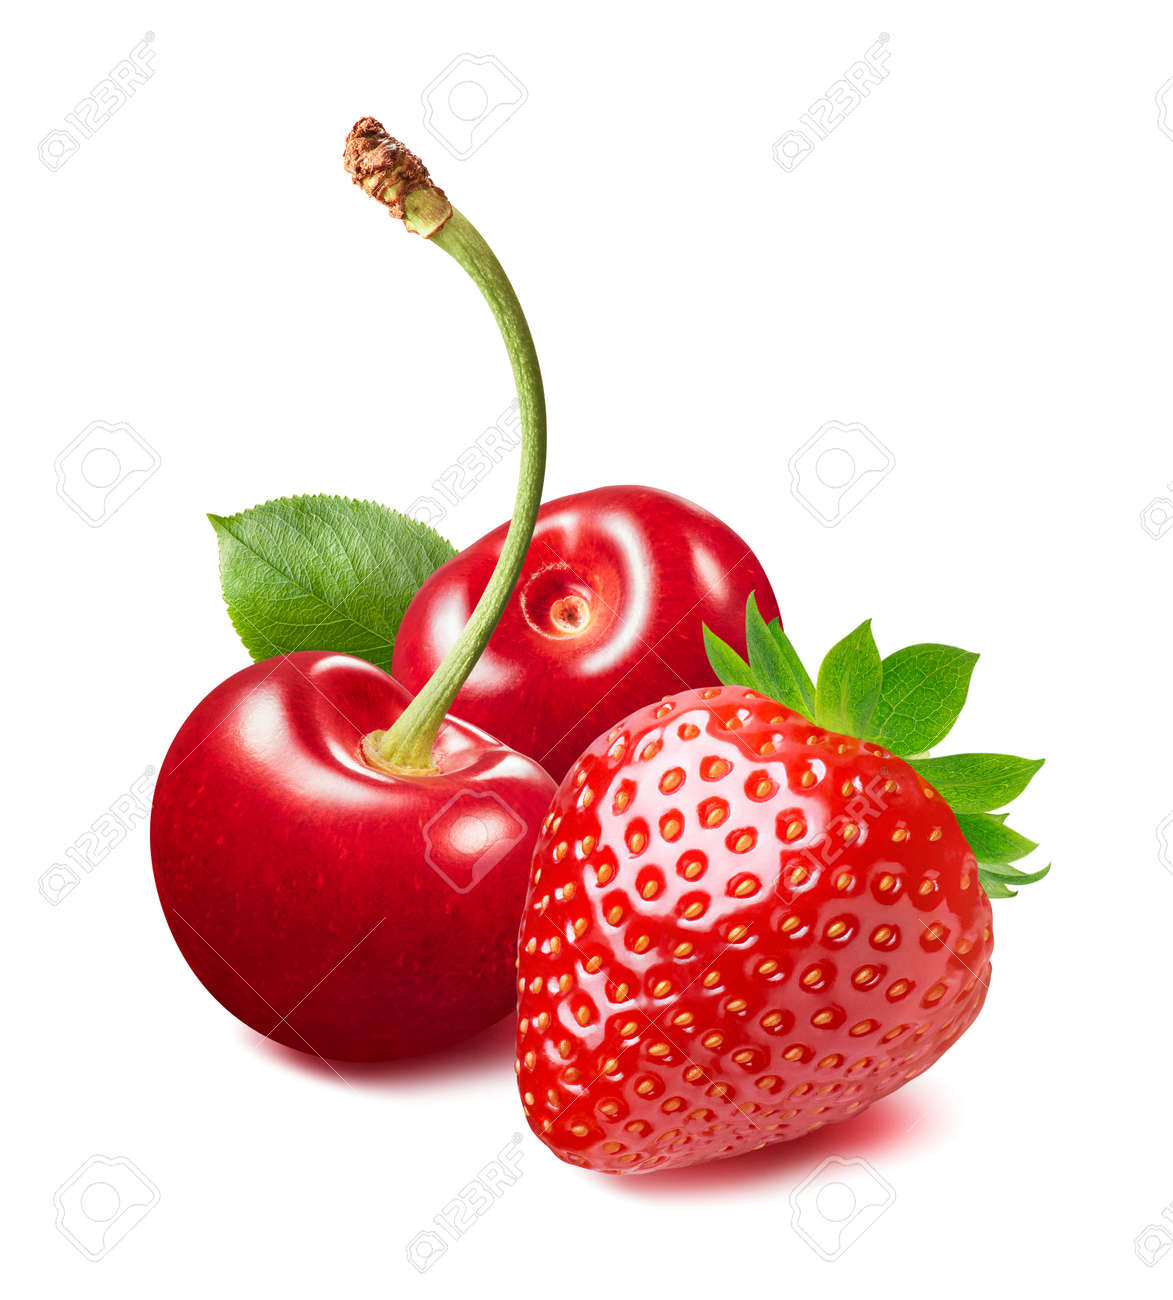 Sweet red cherries and strawberry isolated on white background. Package design element with clipping path - 172432432